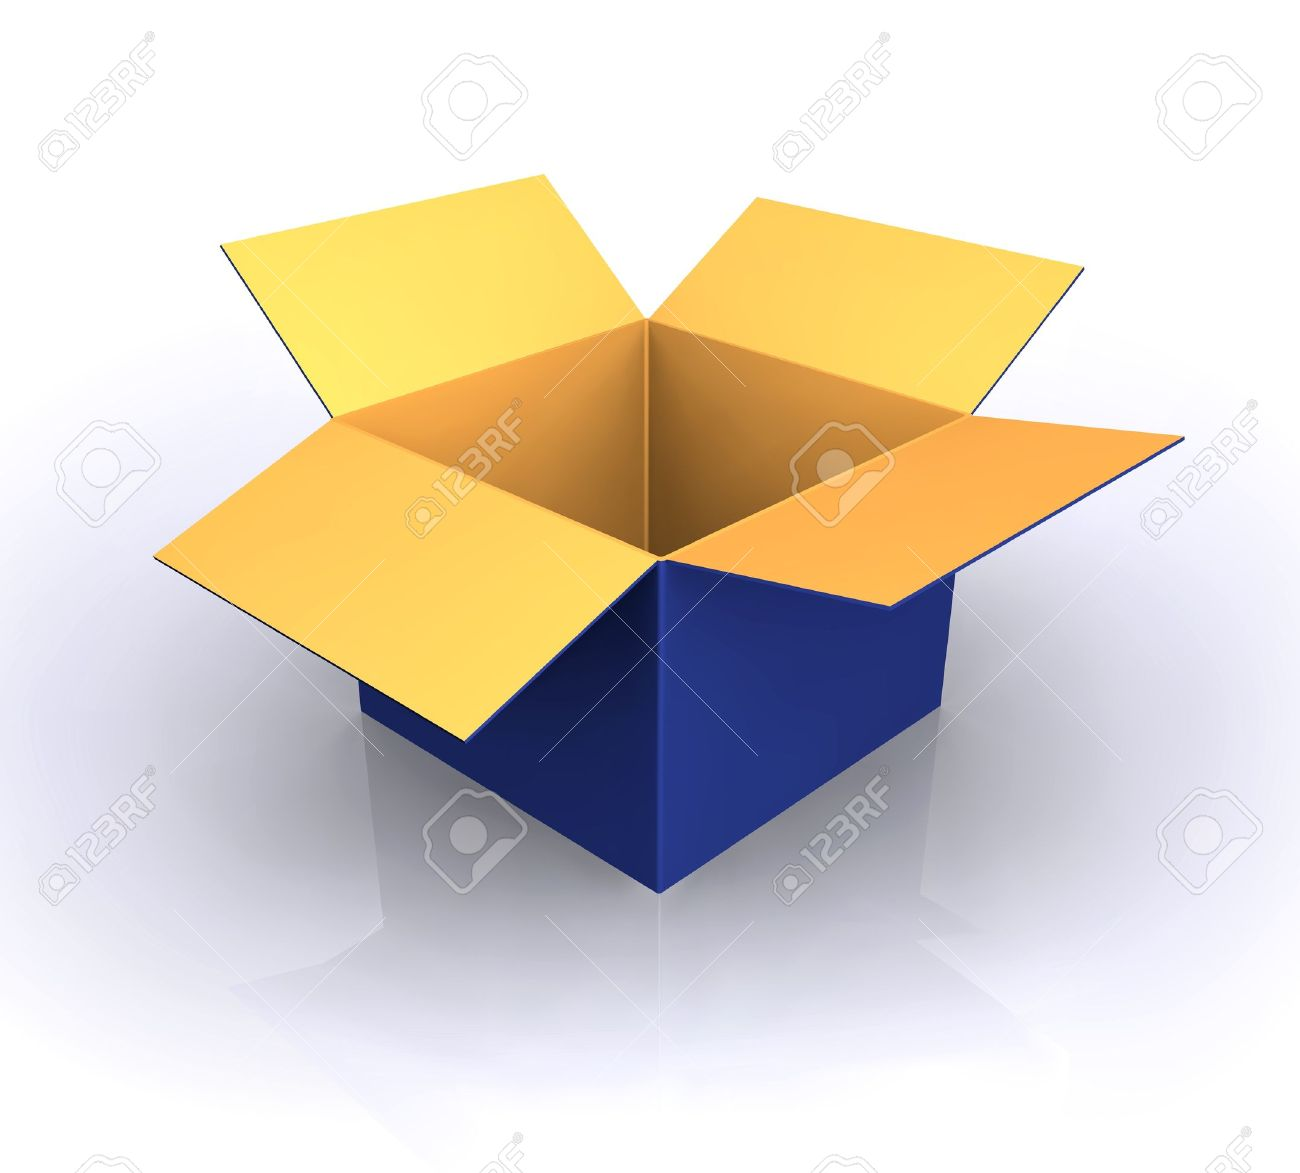 open box clipart. empty open box stock vector 8690469 clipart